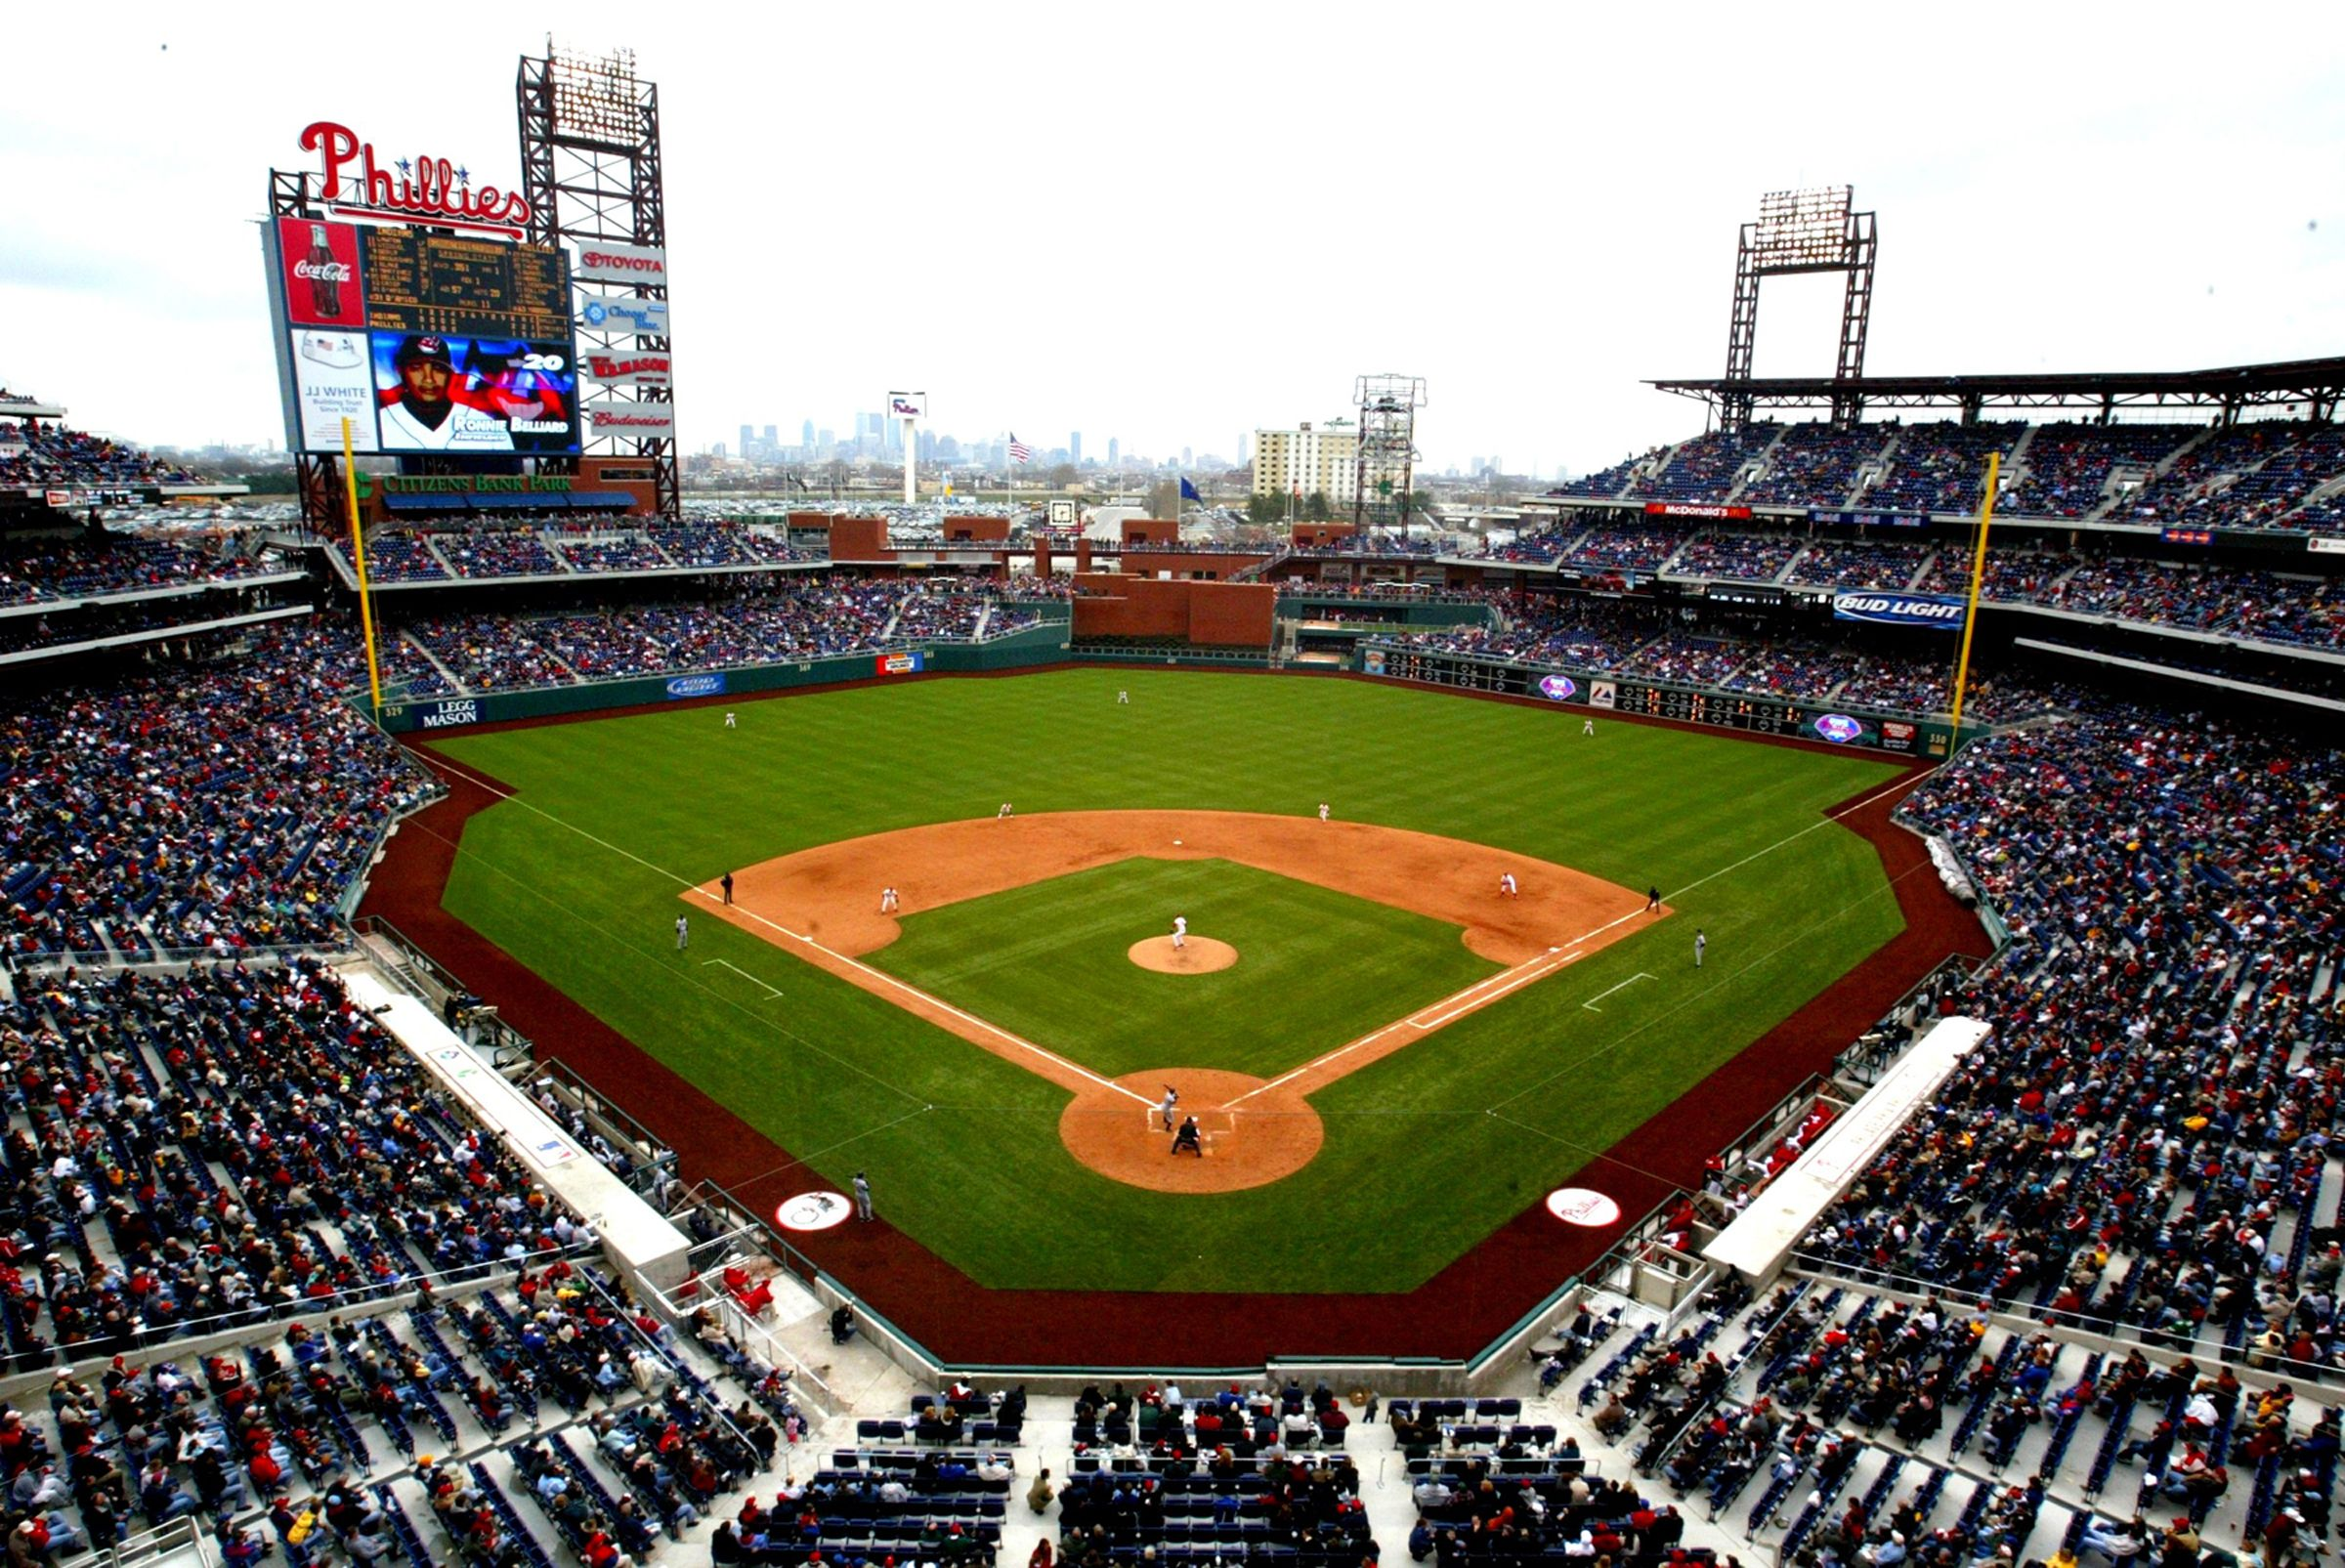 Citizen S Bank Park Located In South Philadelphia Is Home To The Philadelphia Phillies With Images Philadelphia Phillies Philadelphia Phillies